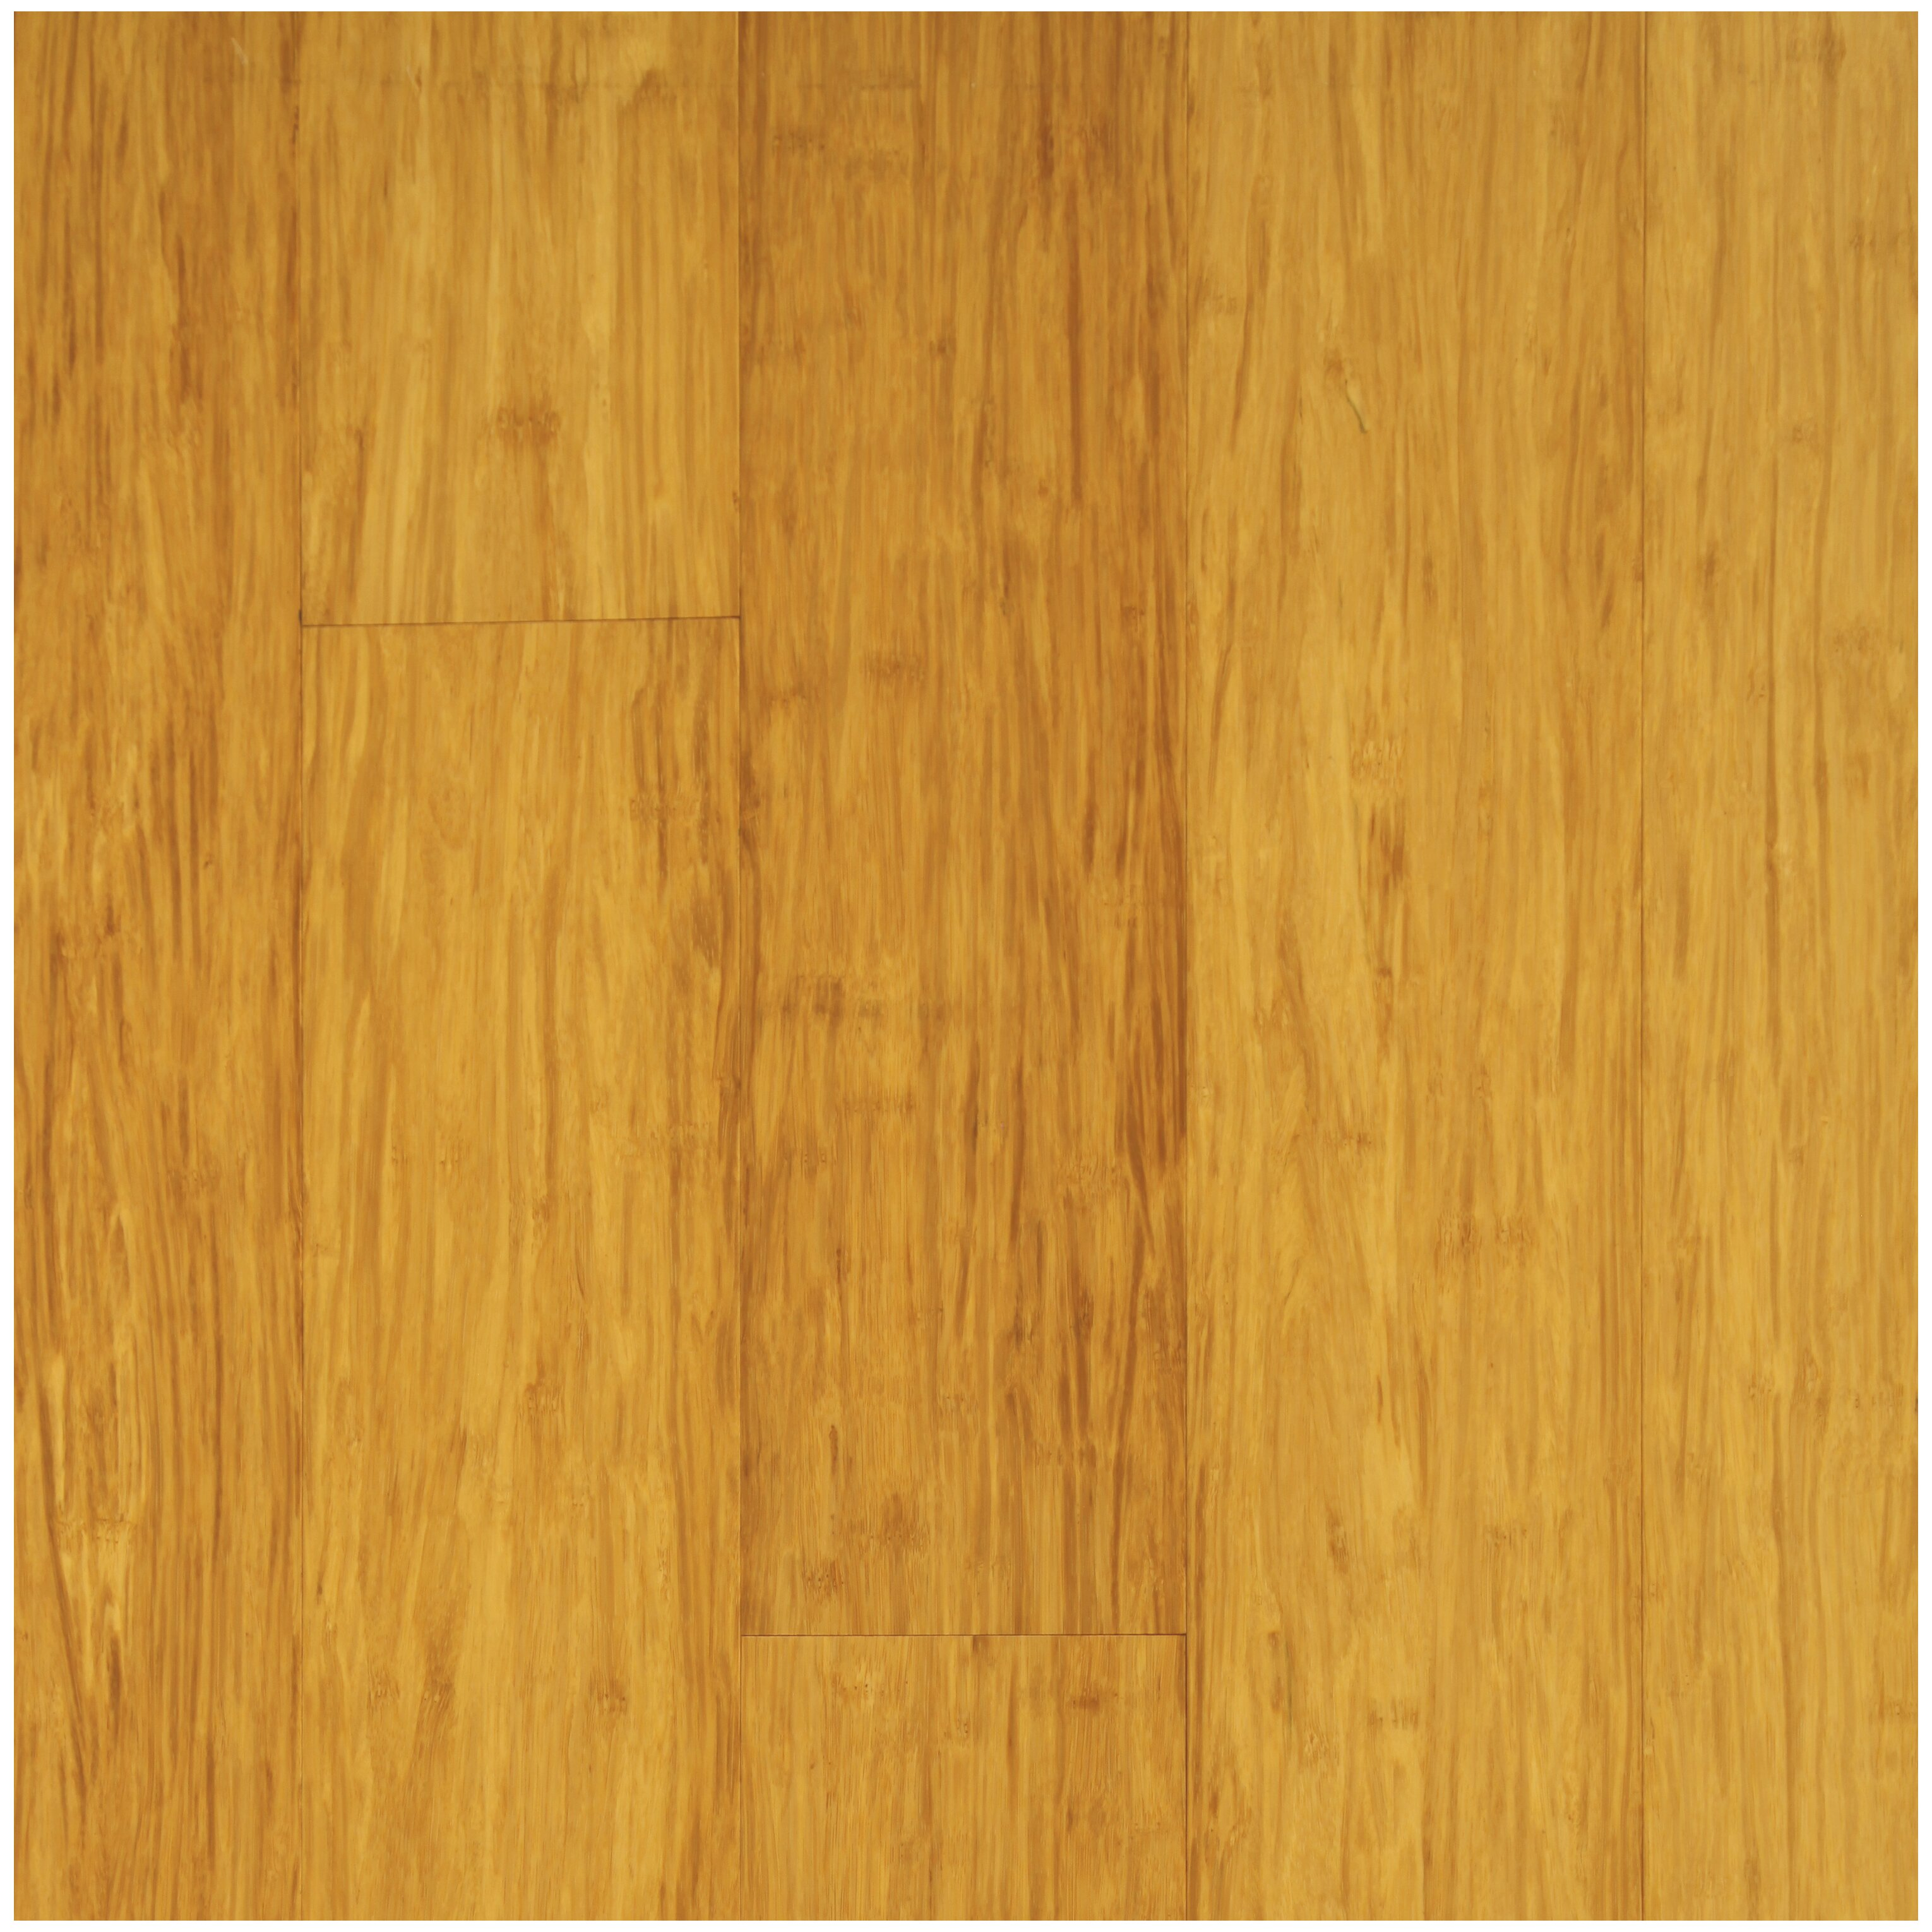 Easoon usa 5 engineered strand woven bamboo hardwood for Engineered bamboo flooring